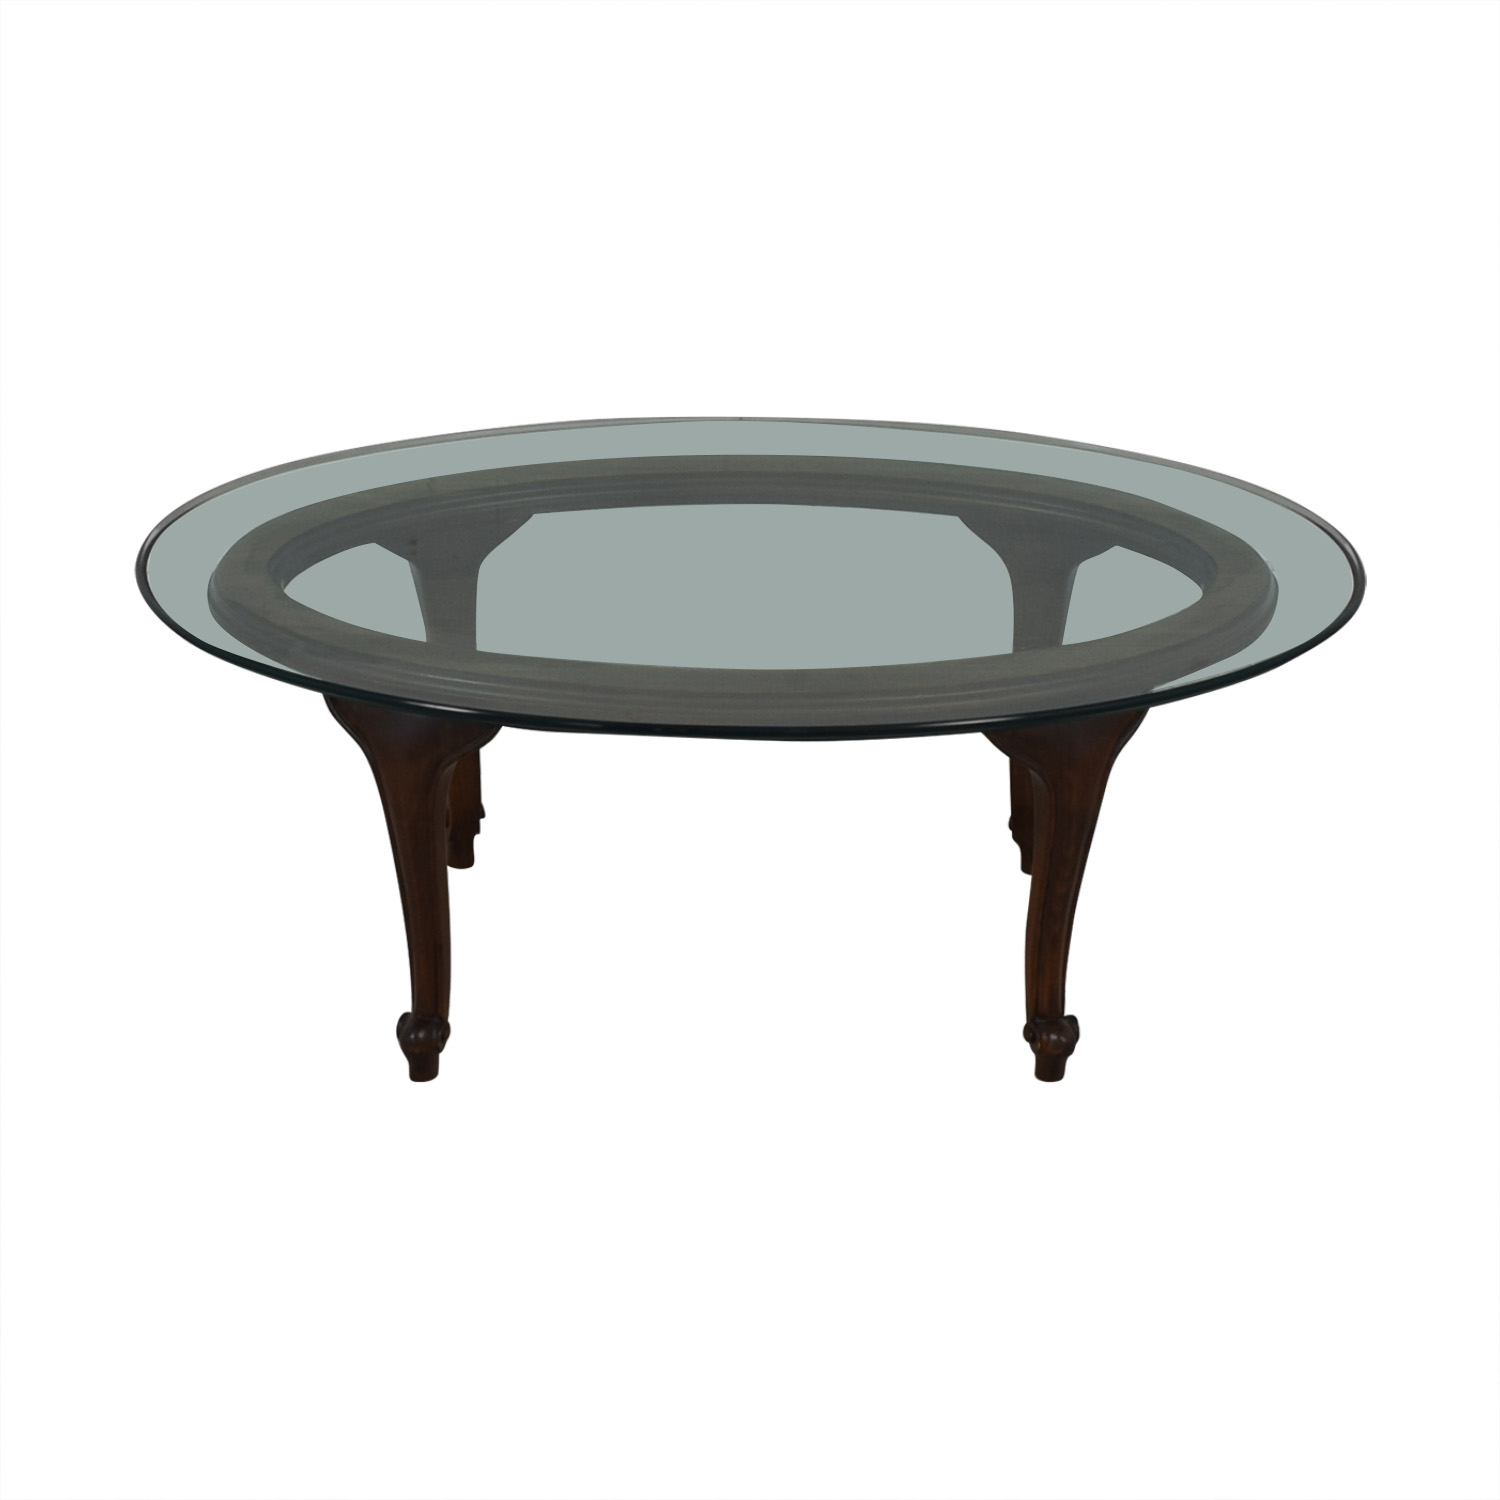 Macy's Macy's Oval Coffee Table for sale